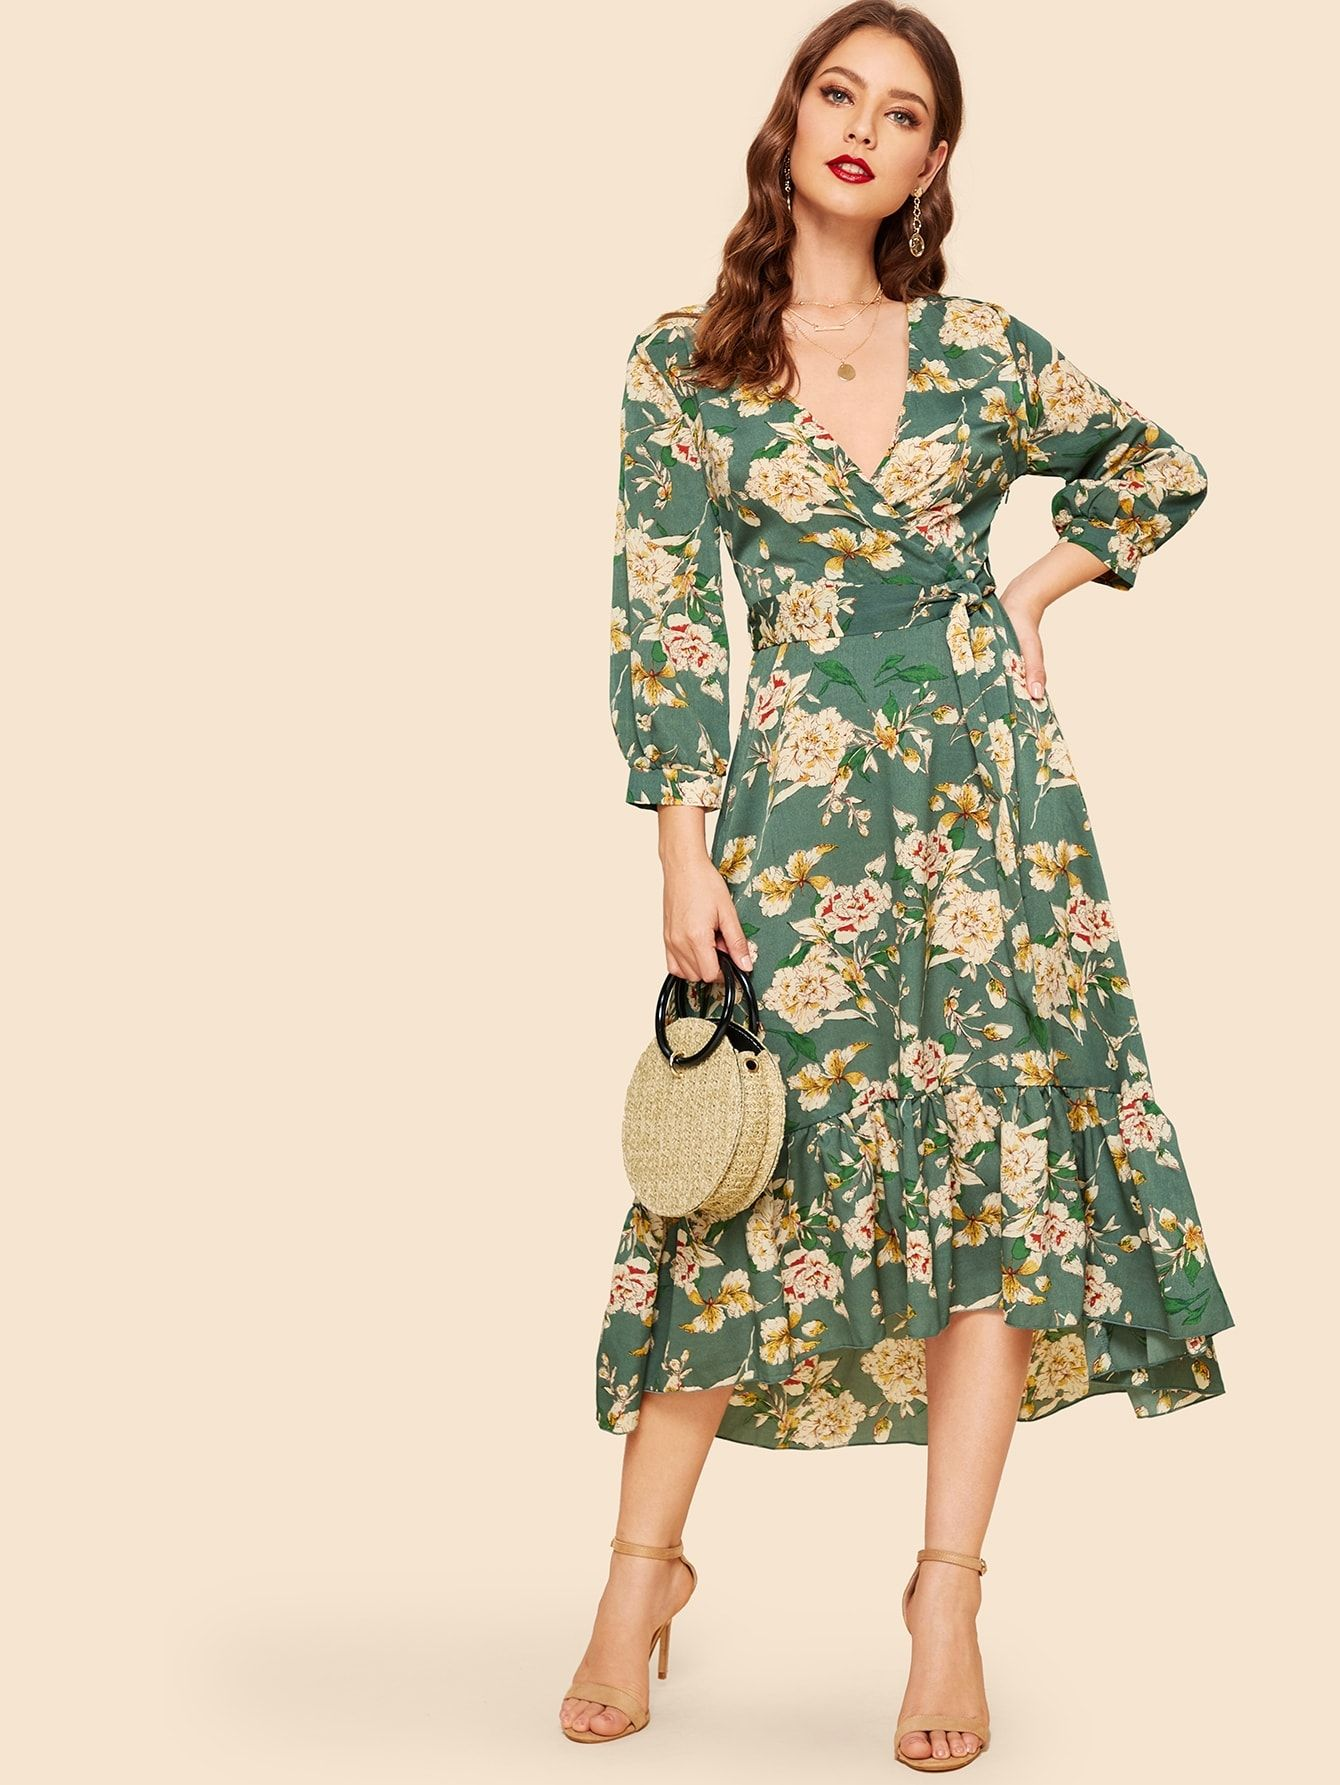 918938ac5f Elegant A Line Ruffle Hem and Belted Floral Fit and Flare Flounce V Neck  Long Sleeve Natural Multicolor Long Length Ruffle Hem Bishop Sleeve Floral  Wrap ...